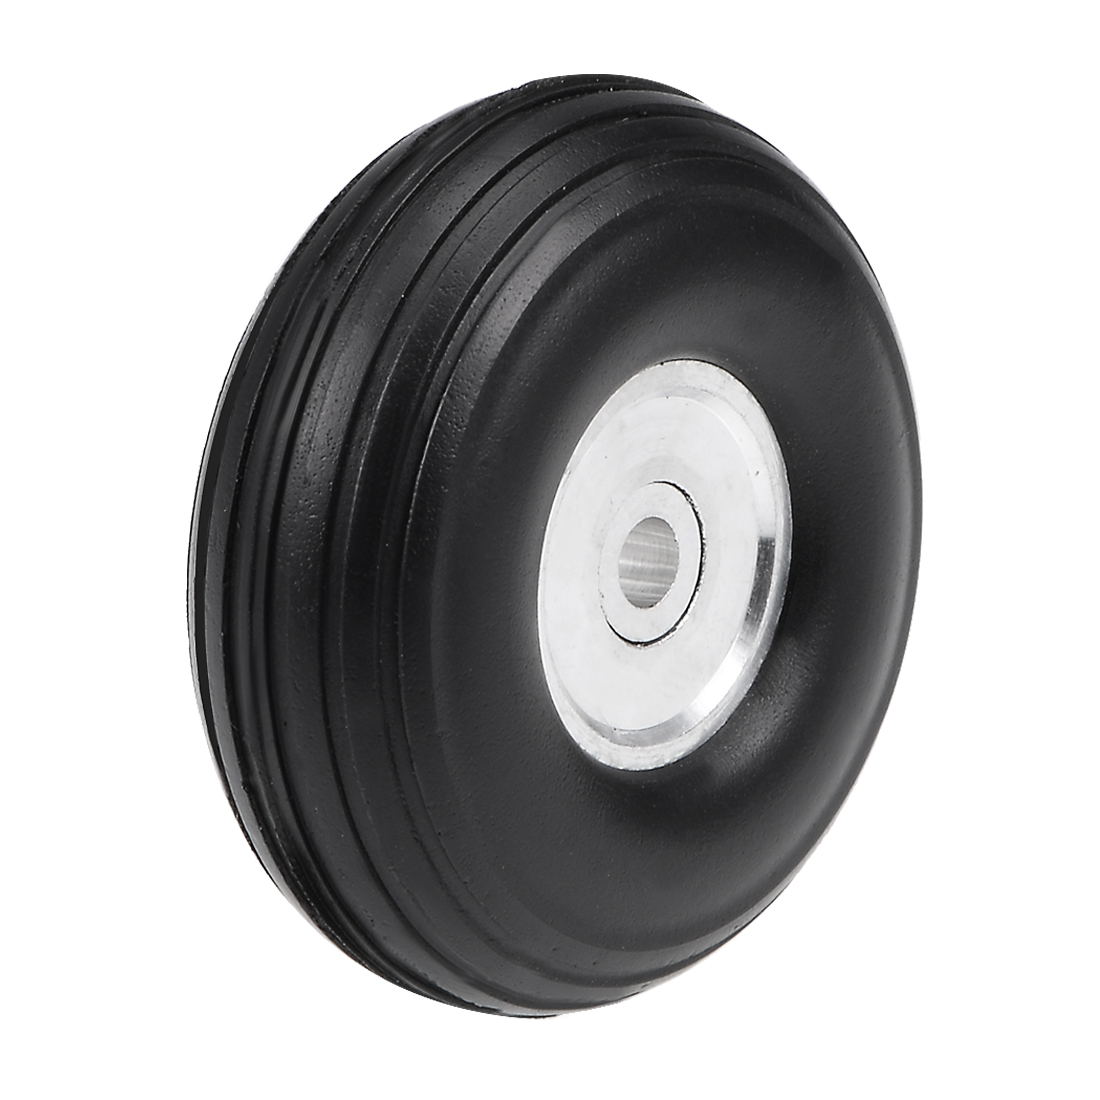 Tire and Wheel Sets for RC Car Airplane,PU Sponge Tire with Aluminum Hub,1.25""